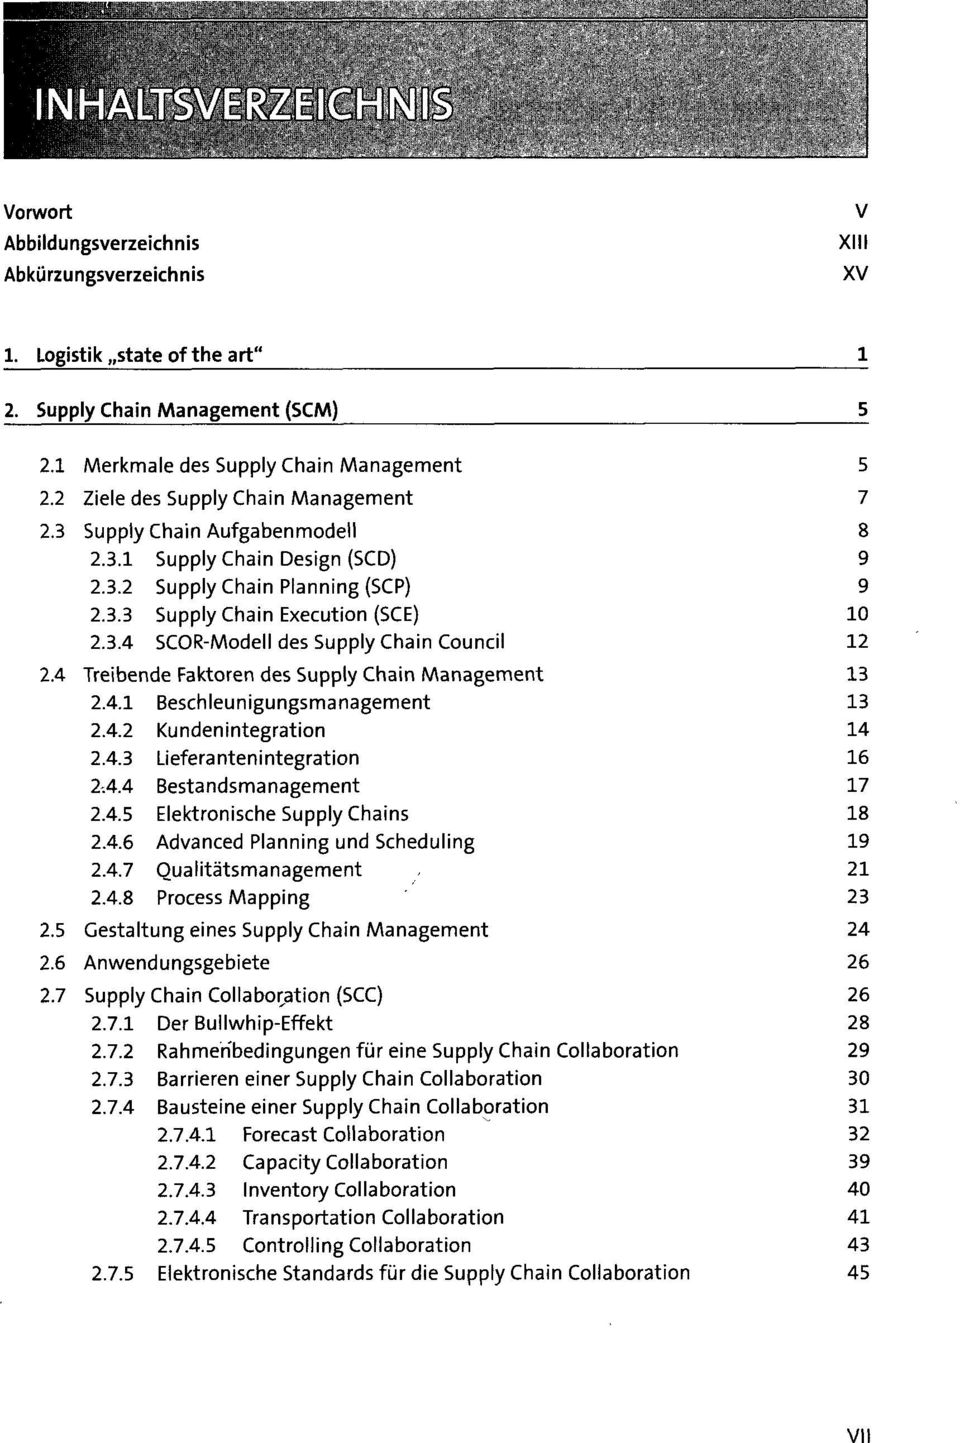 4 Treibende Faktoren des Supply Chain Management 13 2.4.1 Beschleunigungsmanagement 13 2.4.2 Kundenintegration 14 2.4.3 Lieferantenintegration 16 2.4.4 Bestandsmanagement 17 2.4.5 Elektronische Supply Chains 18 2.